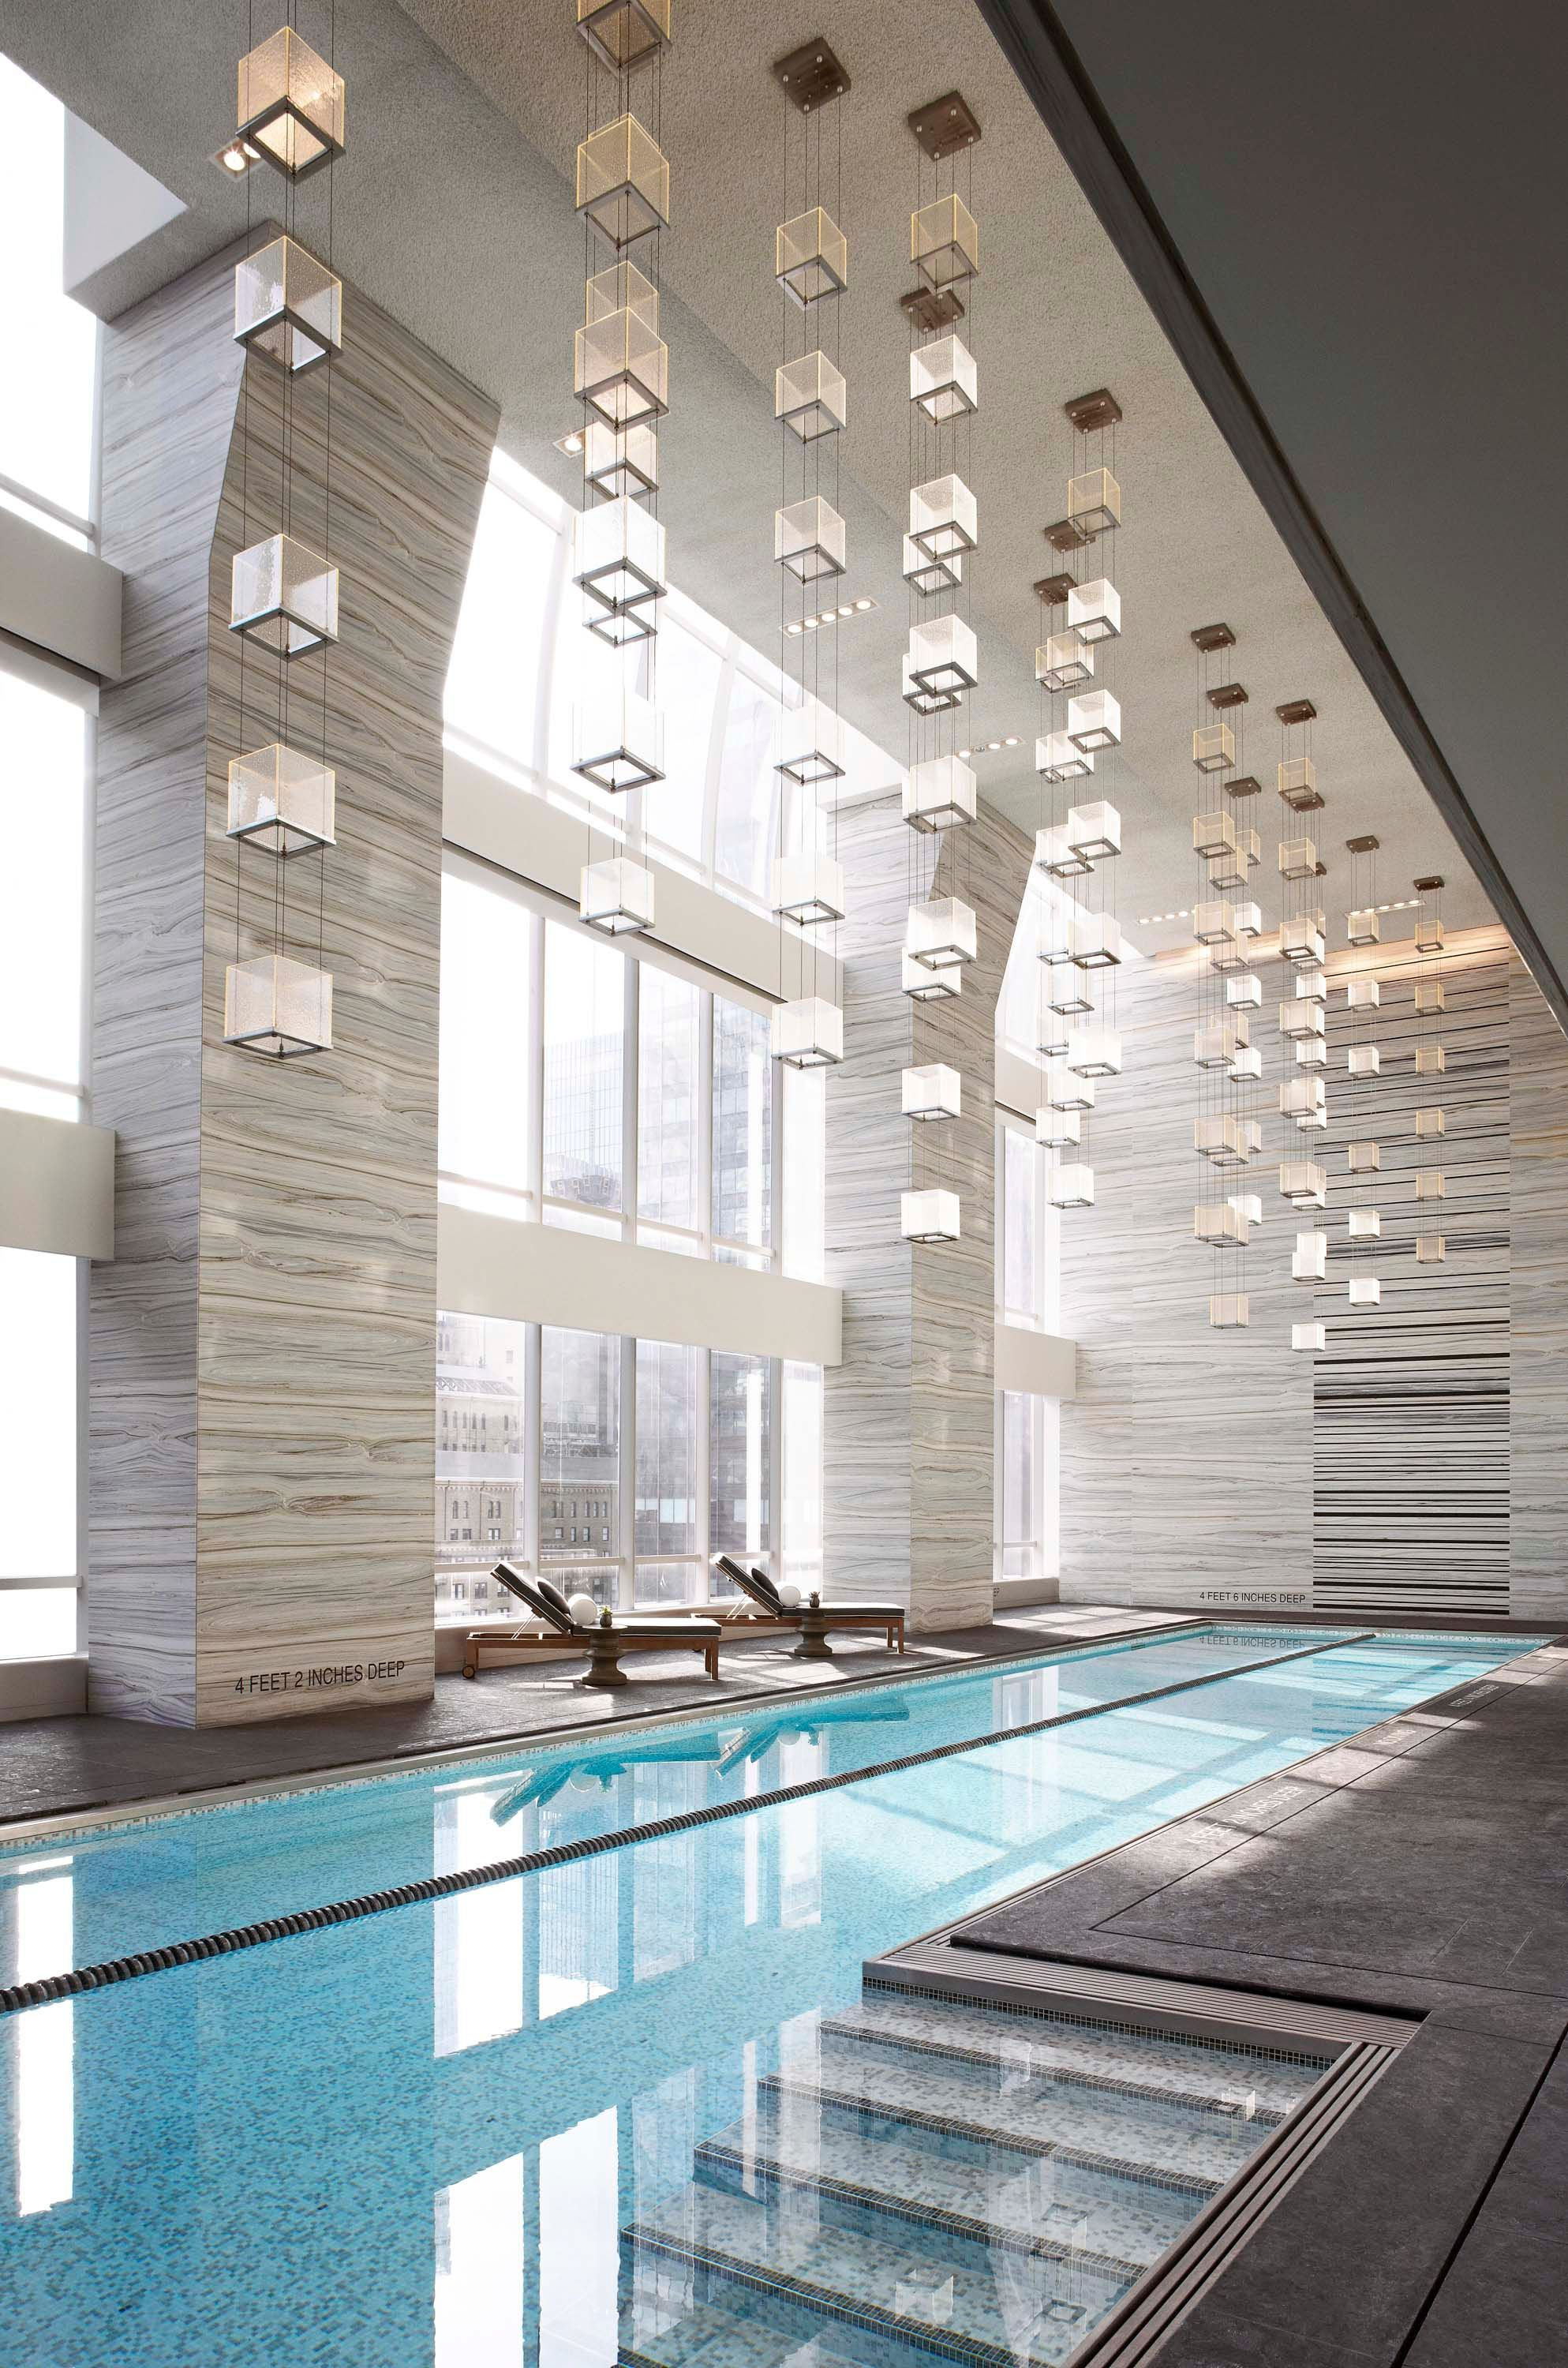 Park Hyatt New York - Spa Nalia - Midtown Manhattan | Schwimmen ... Spa Und Wellness Zentren Kreative Architektur